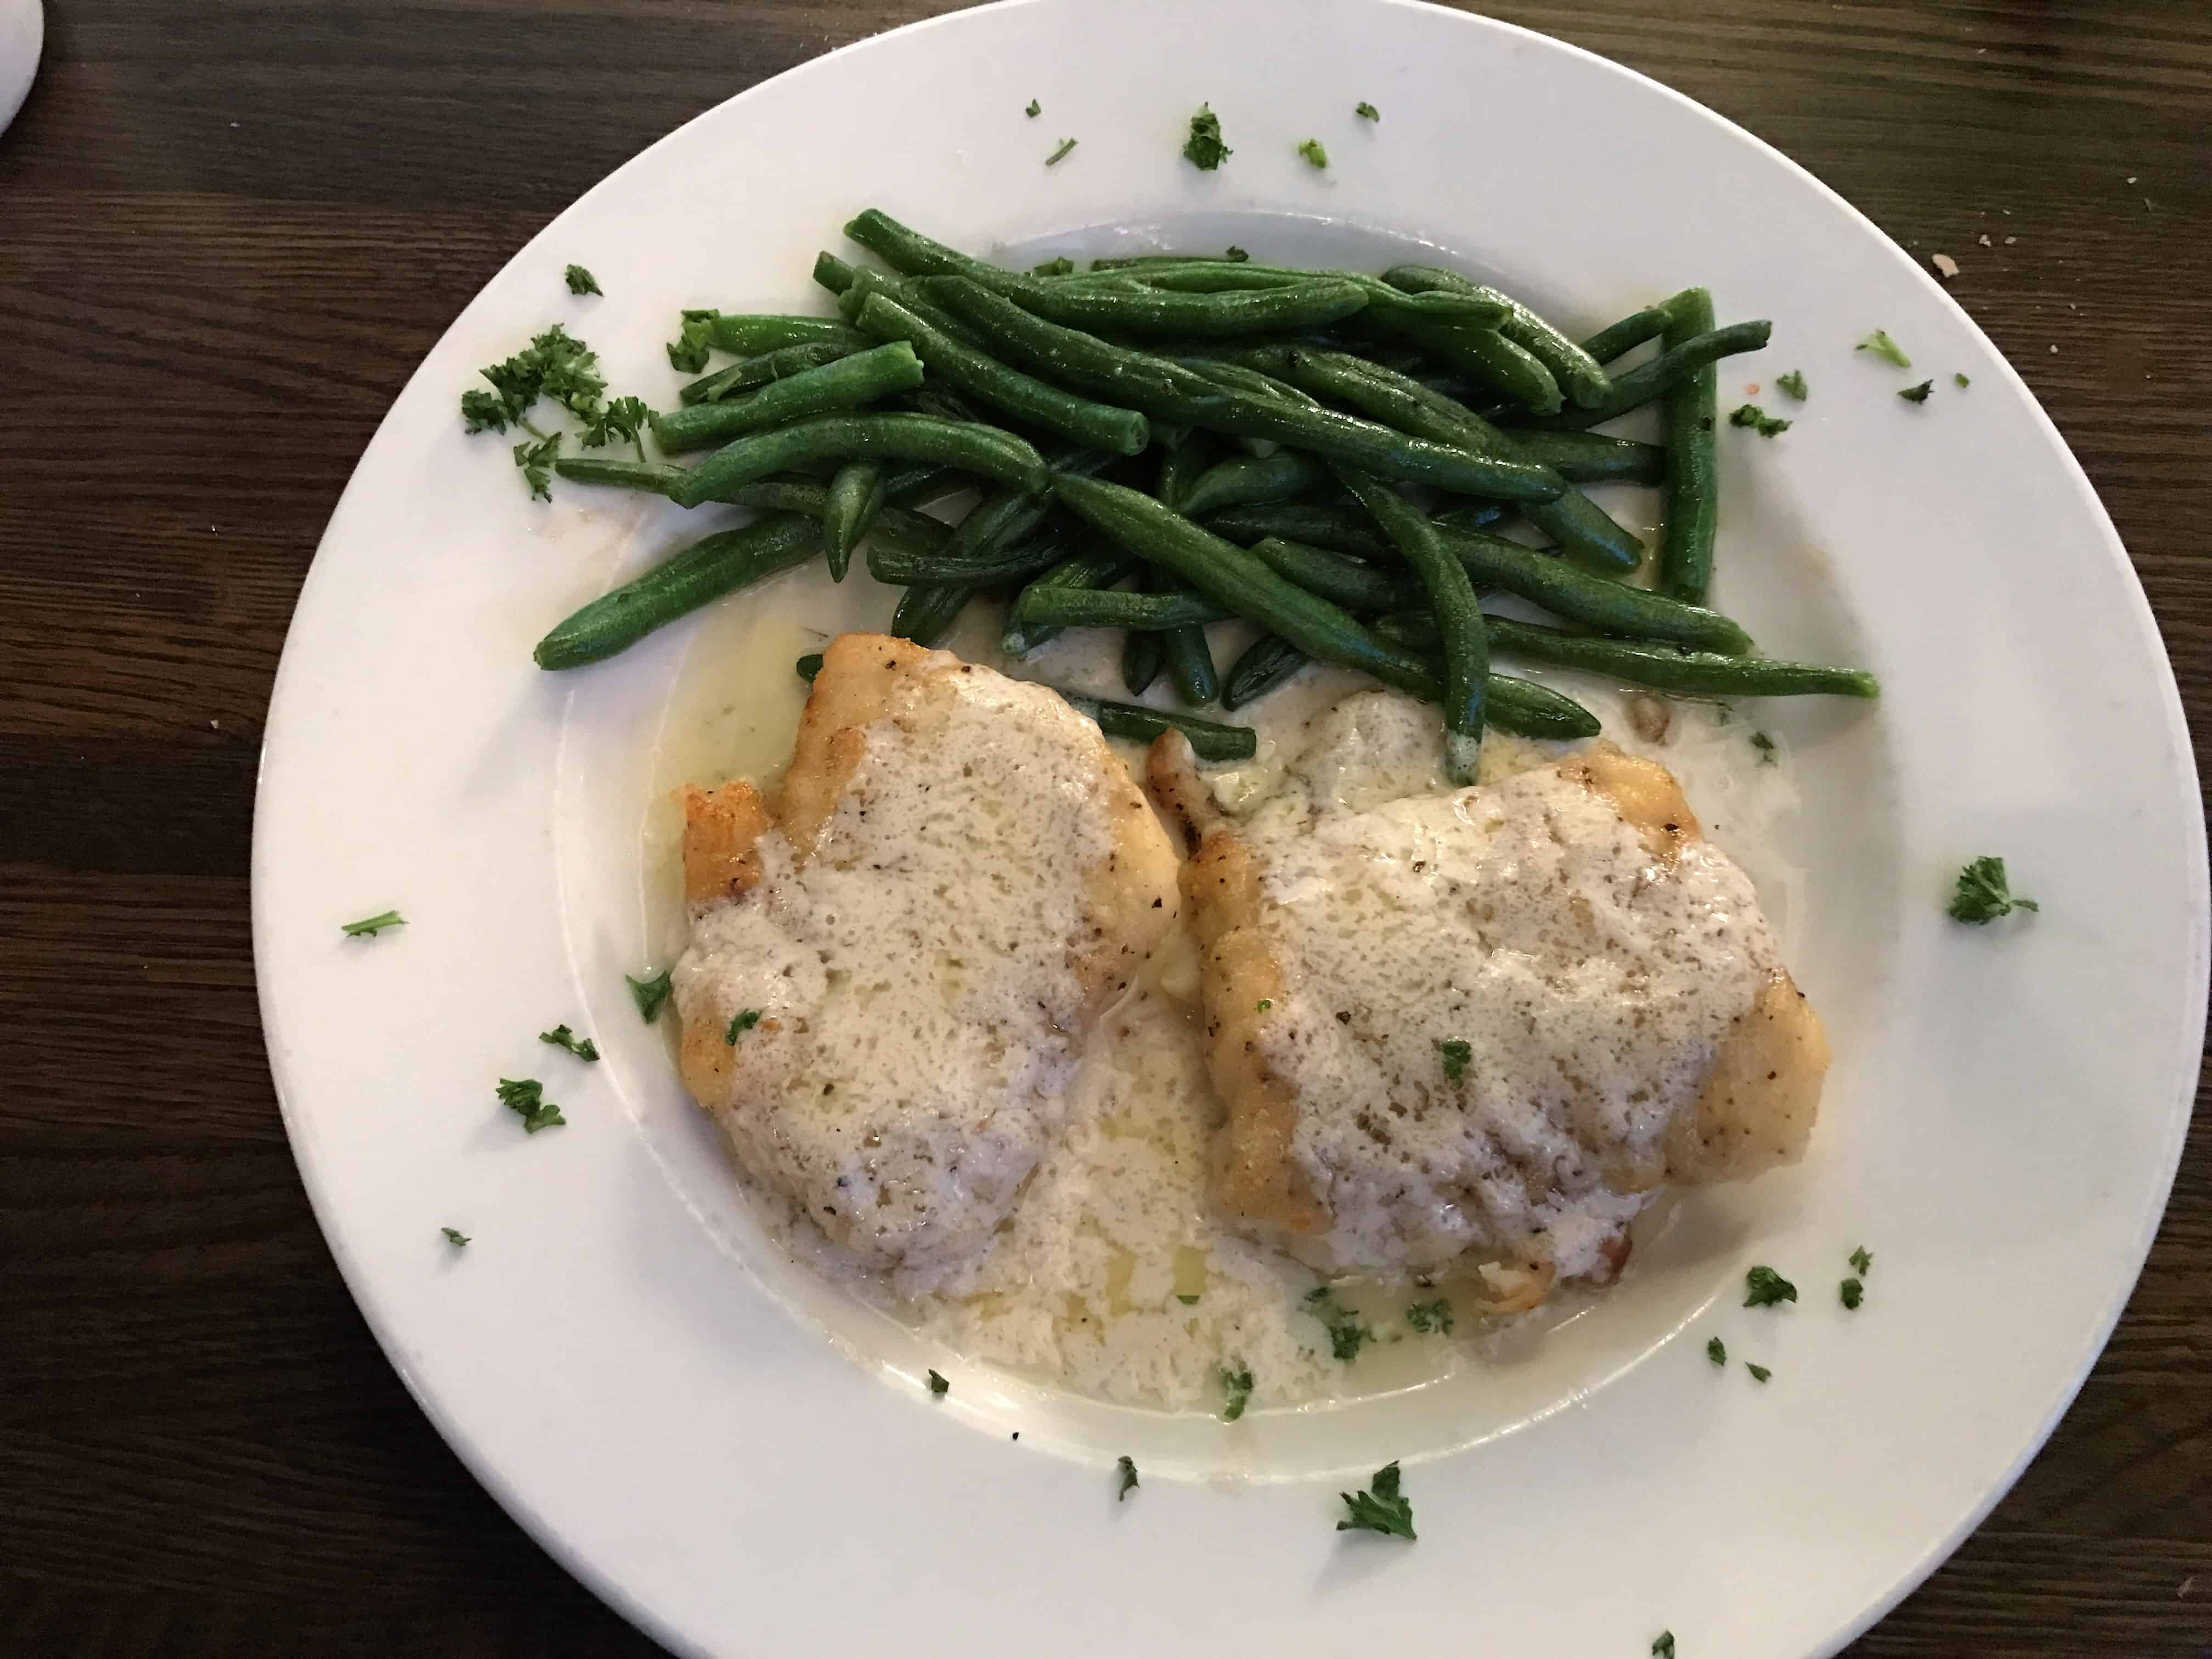 Terranova's cod loins baked with parmesan cheese